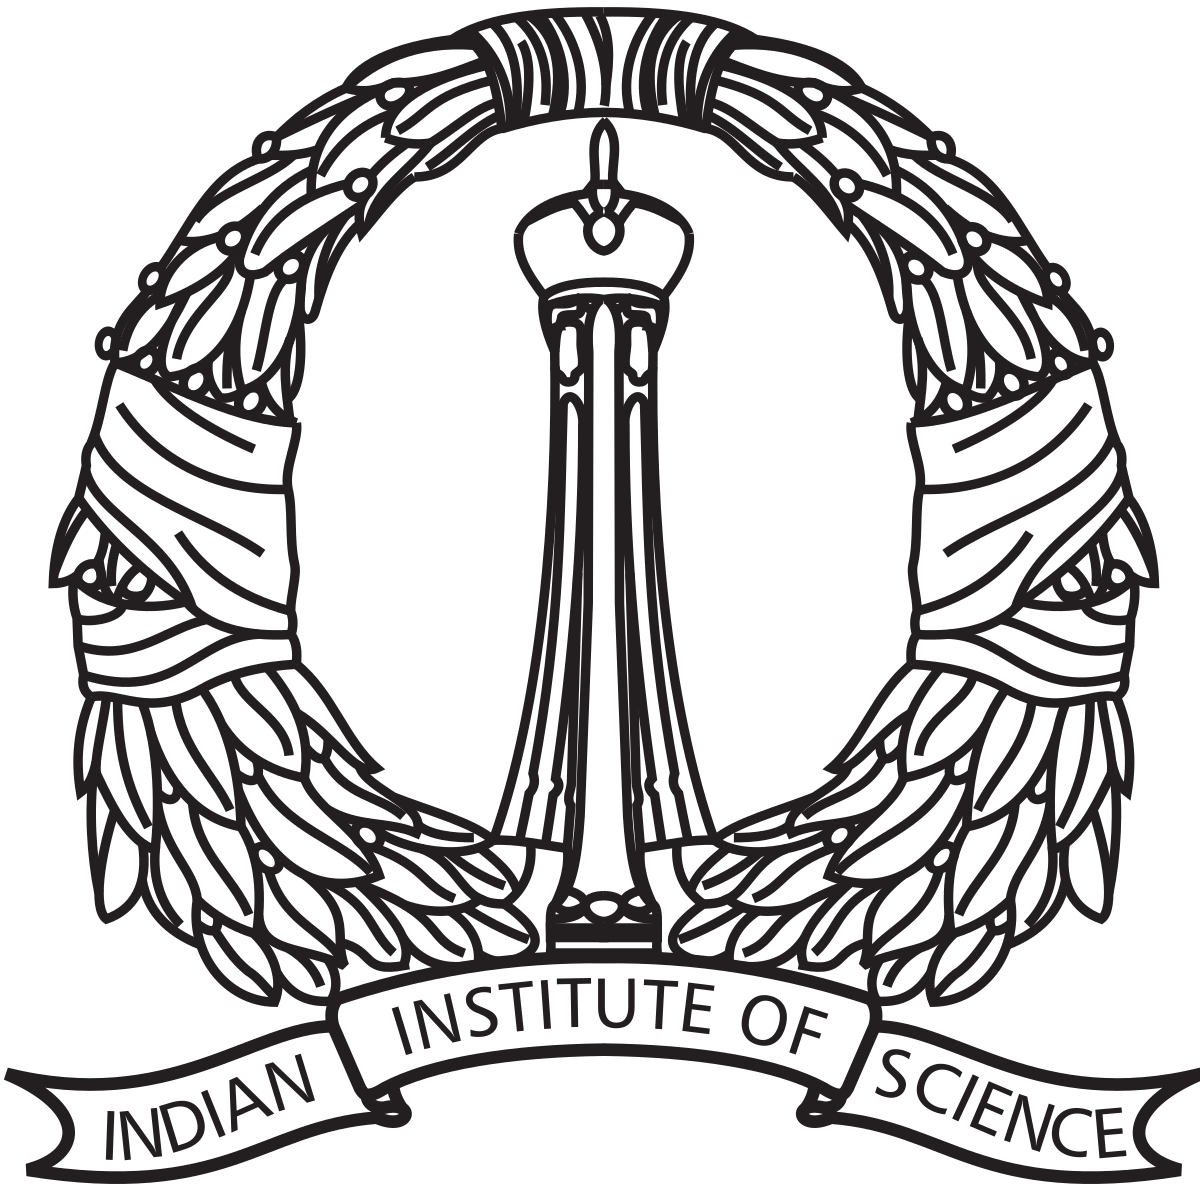 Drawing science all about. Indian institute of wikipedia